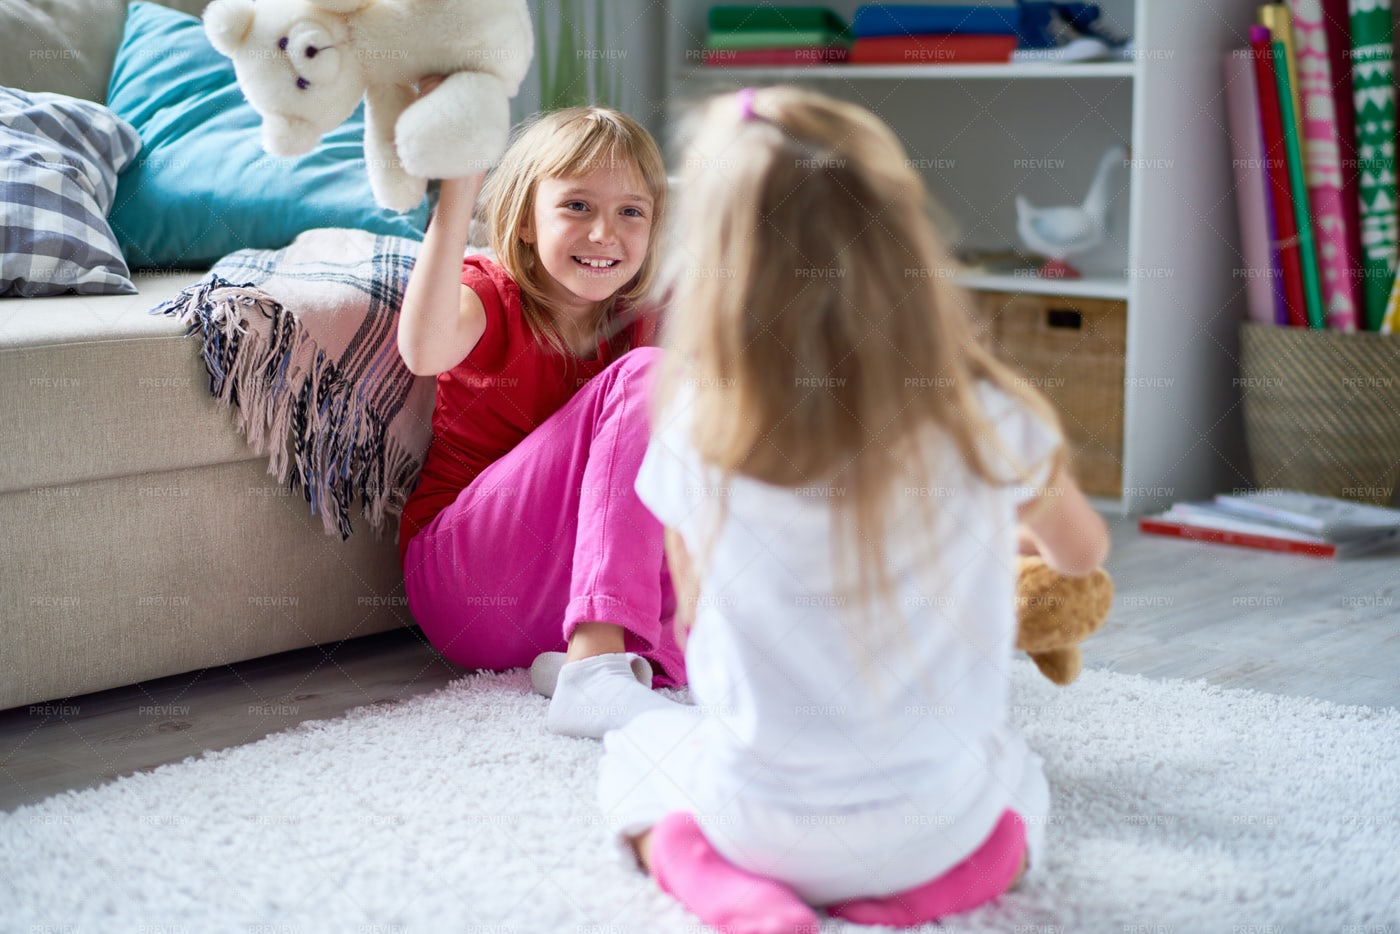 Lovely Moments Of Happy Childhood: Stock Photos